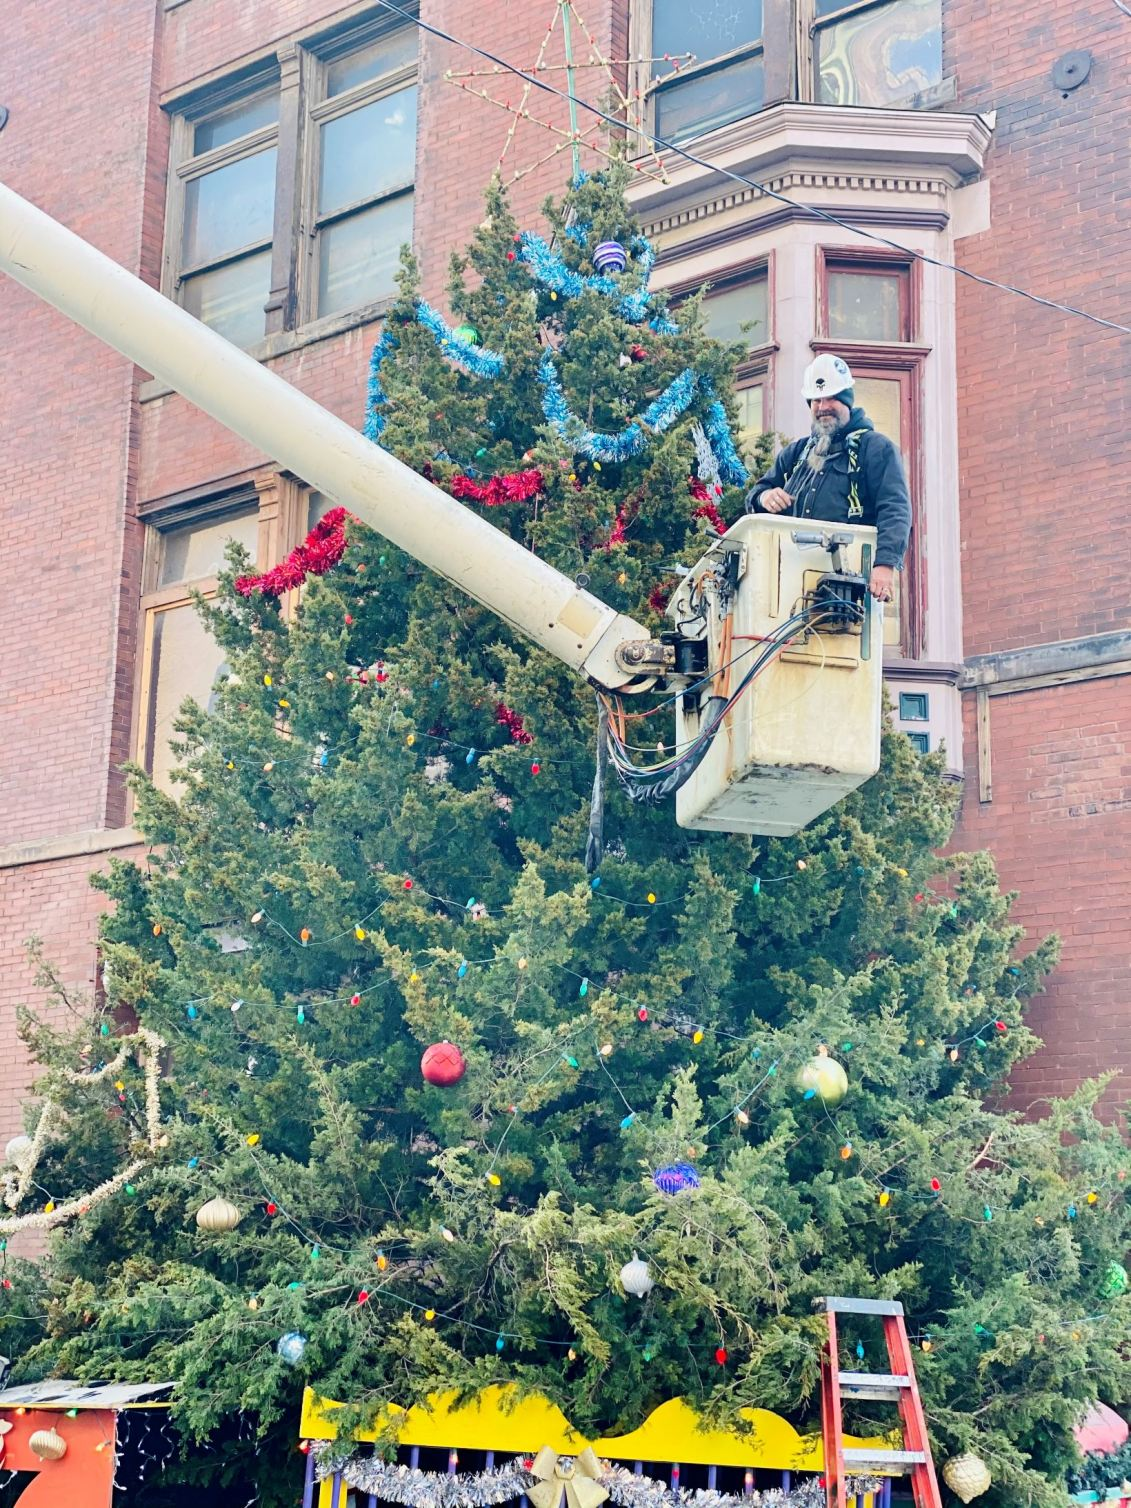 West Bottoms 2020 tree ready for holiday lighting.